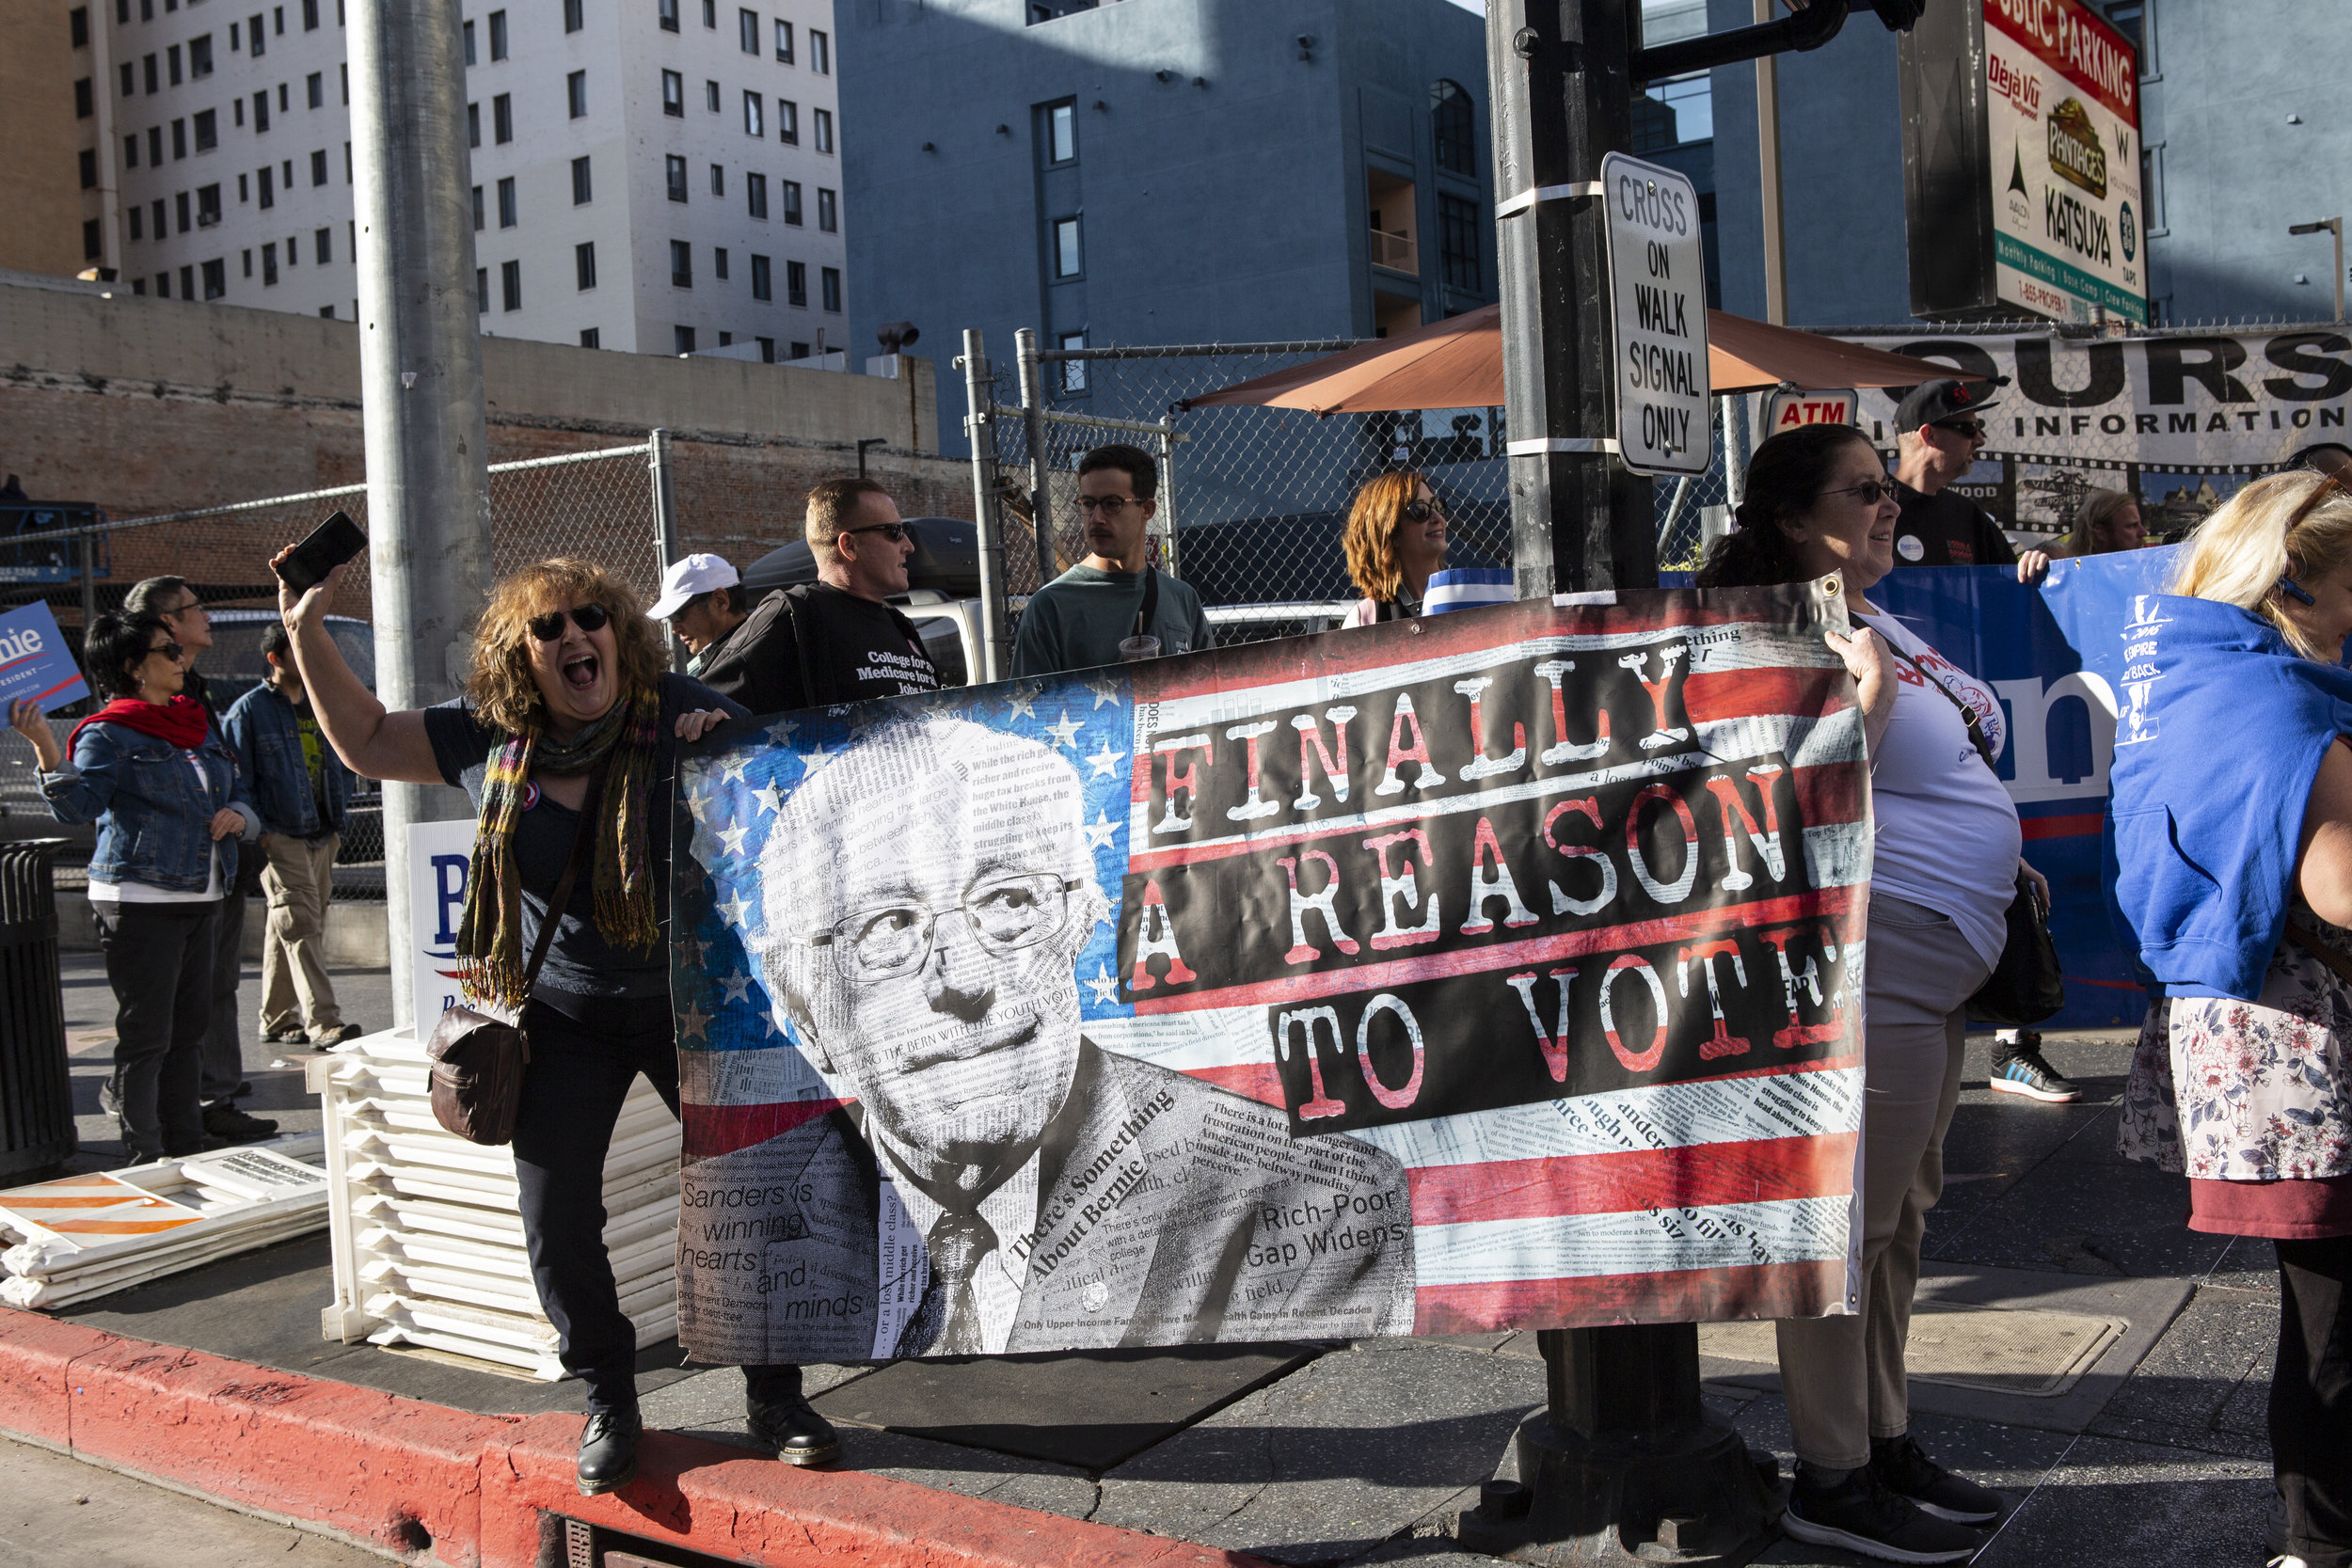 Bernie Sanders supporters gathered for the march and rally, Saturday, February 23, 2019 in Hollywood, Calif. Senator Bernie Sanders announced this past Tuesday that he will again seek the presidency and his supporters get together to support him with different slogans. Yasmin Jafari / The Corsair